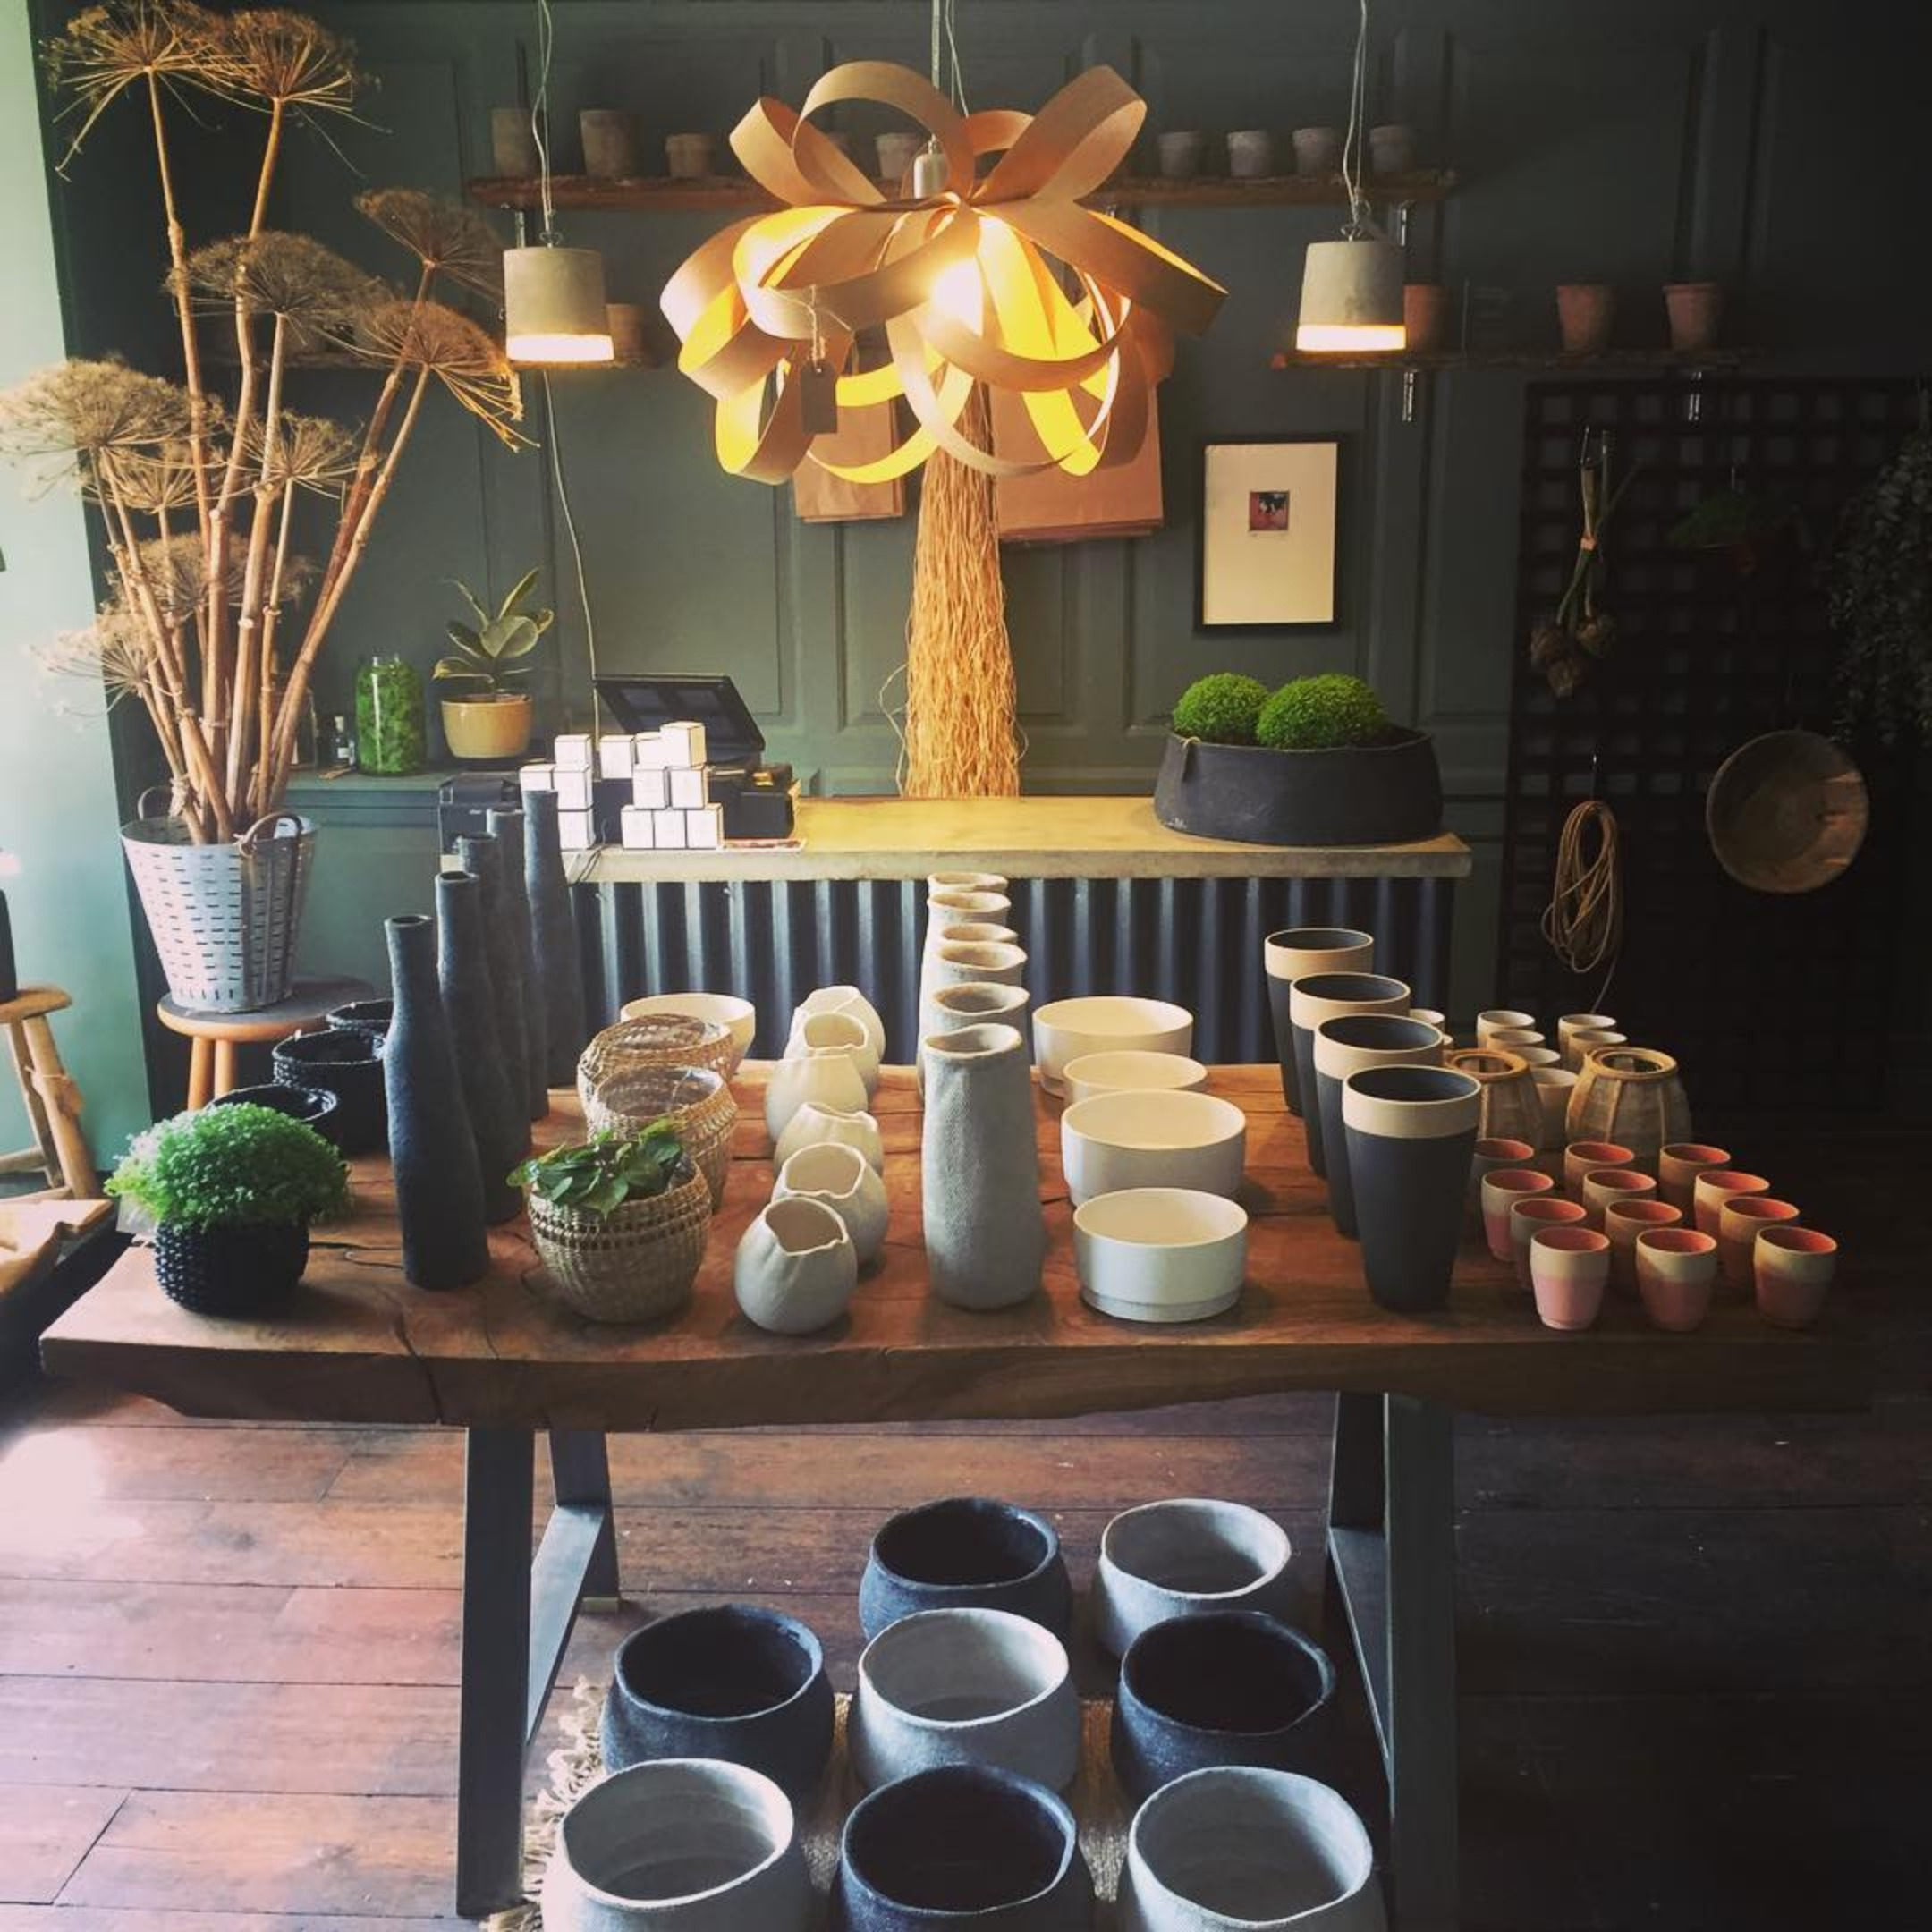 KAGU interiors shop with pots, vases and bespoke table